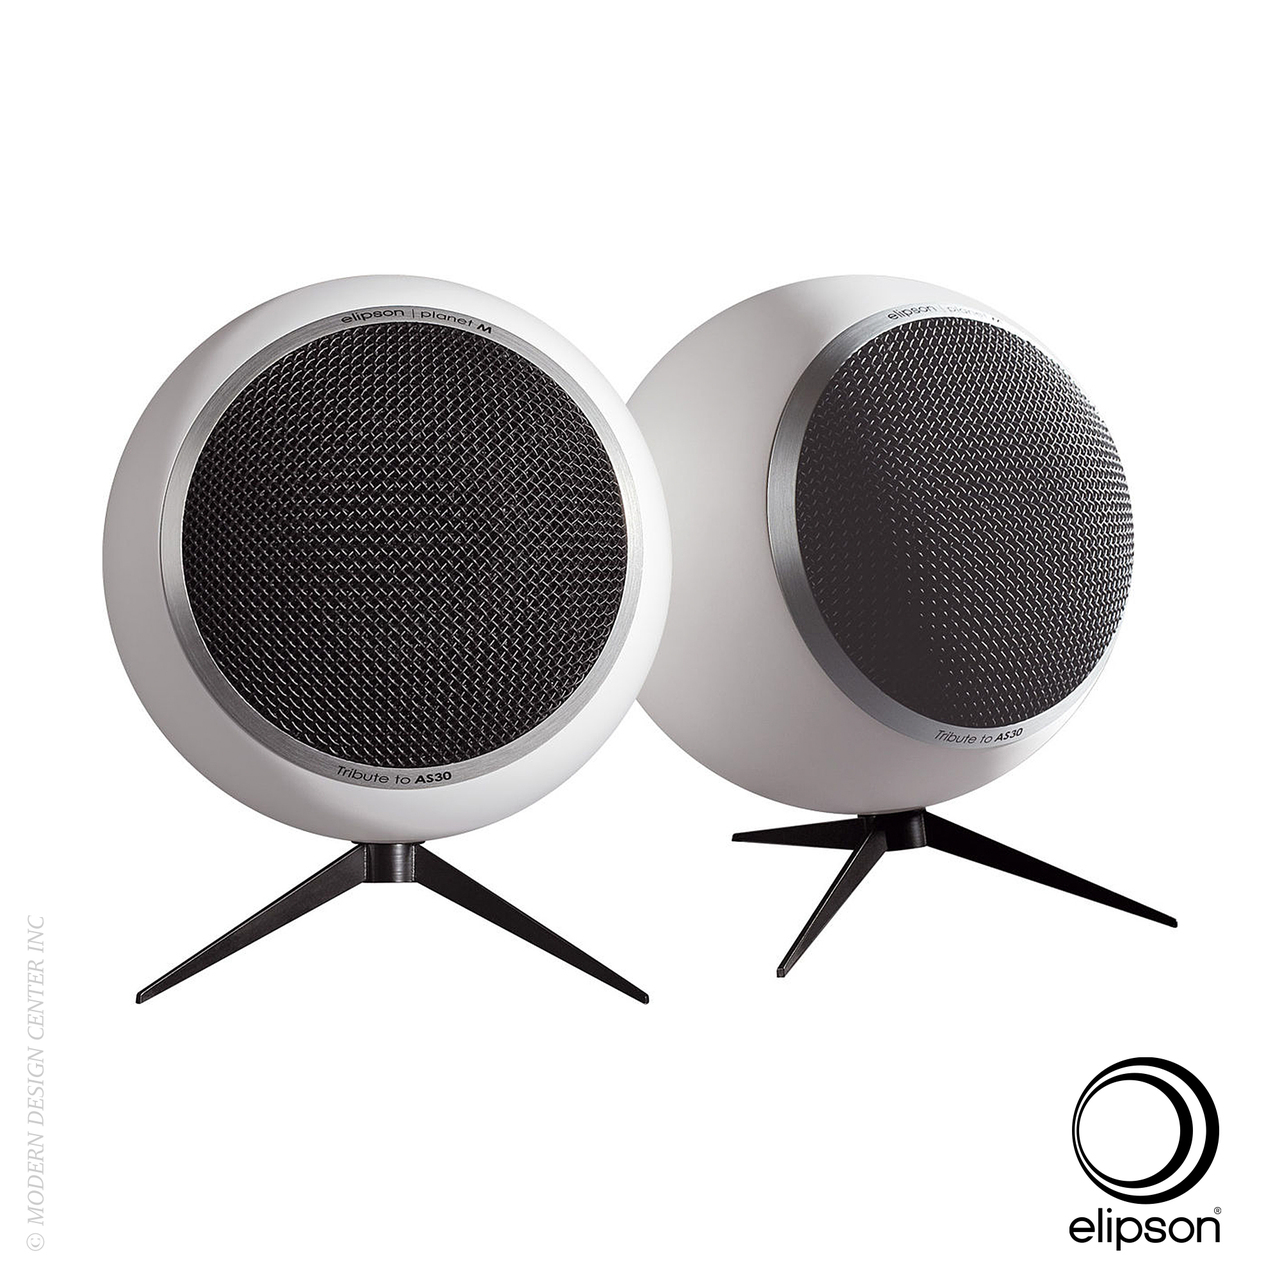 ALTAVOCES PLANET M 2.0 AS30 Tribute